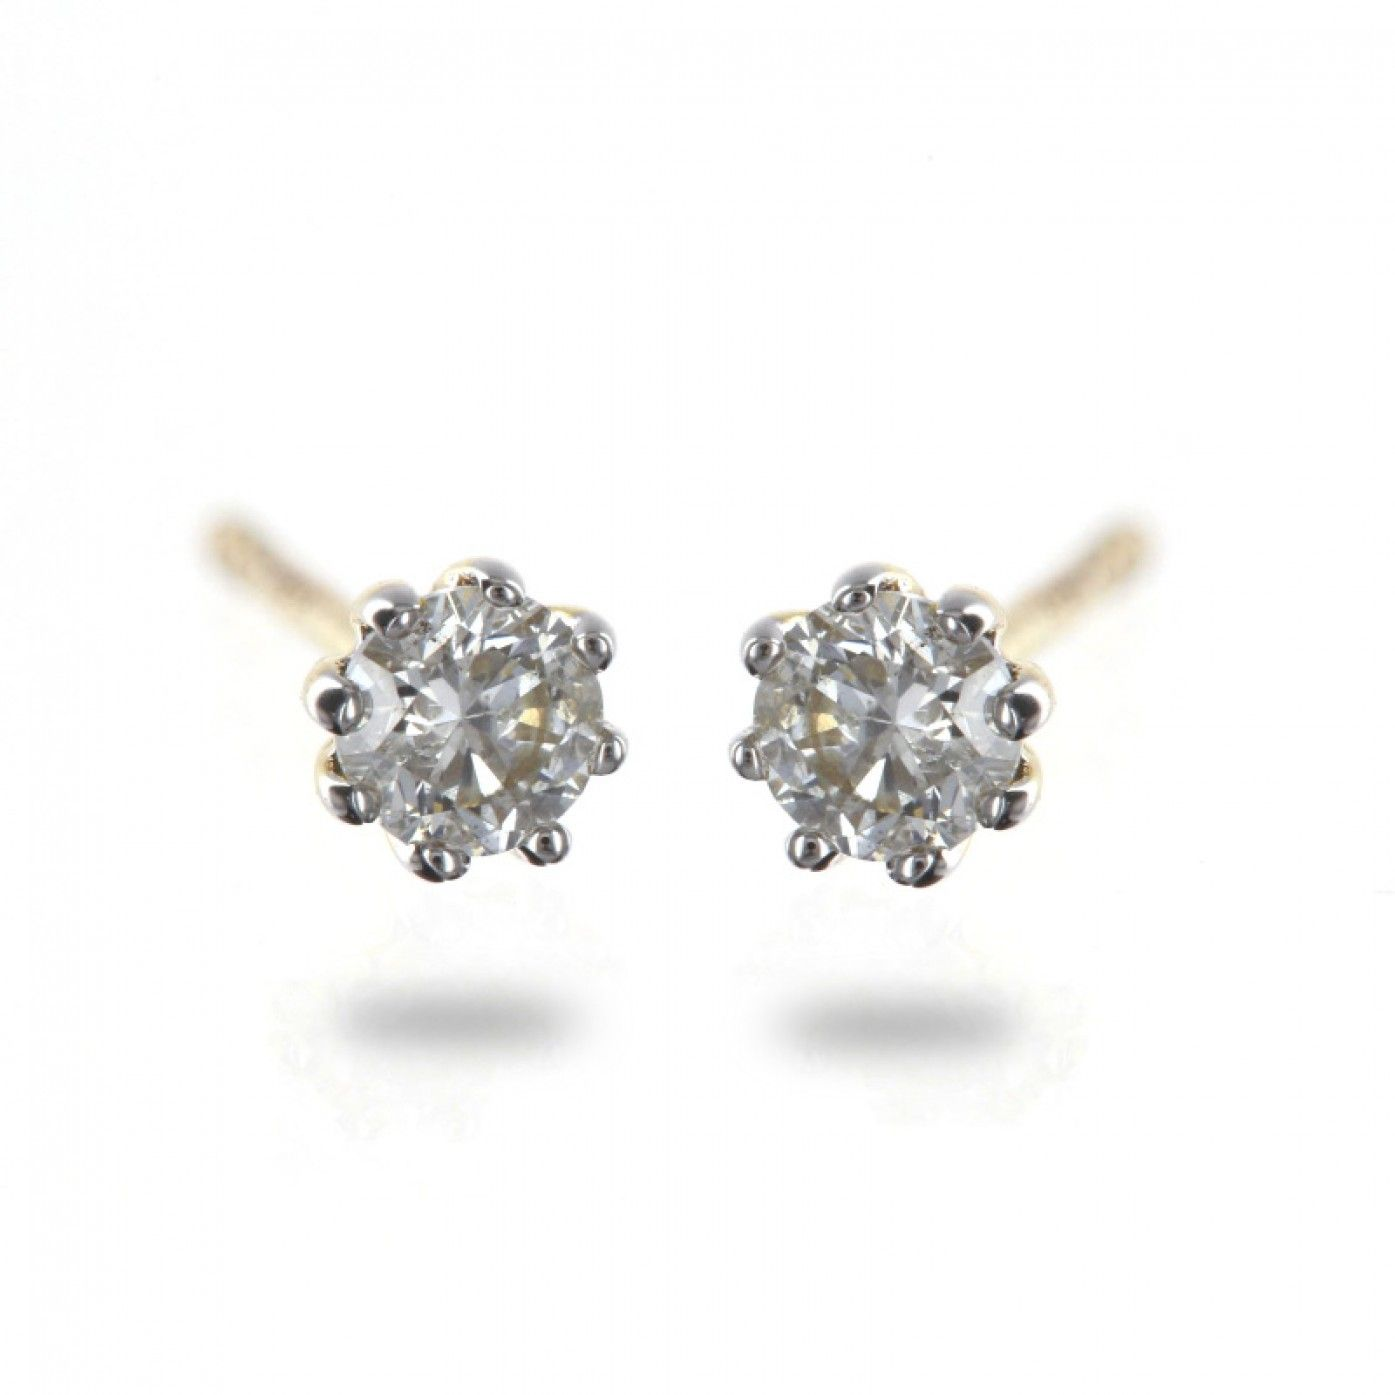 Solitaire 0 35ct 8 claw round diamond studs in 9K yellow gold